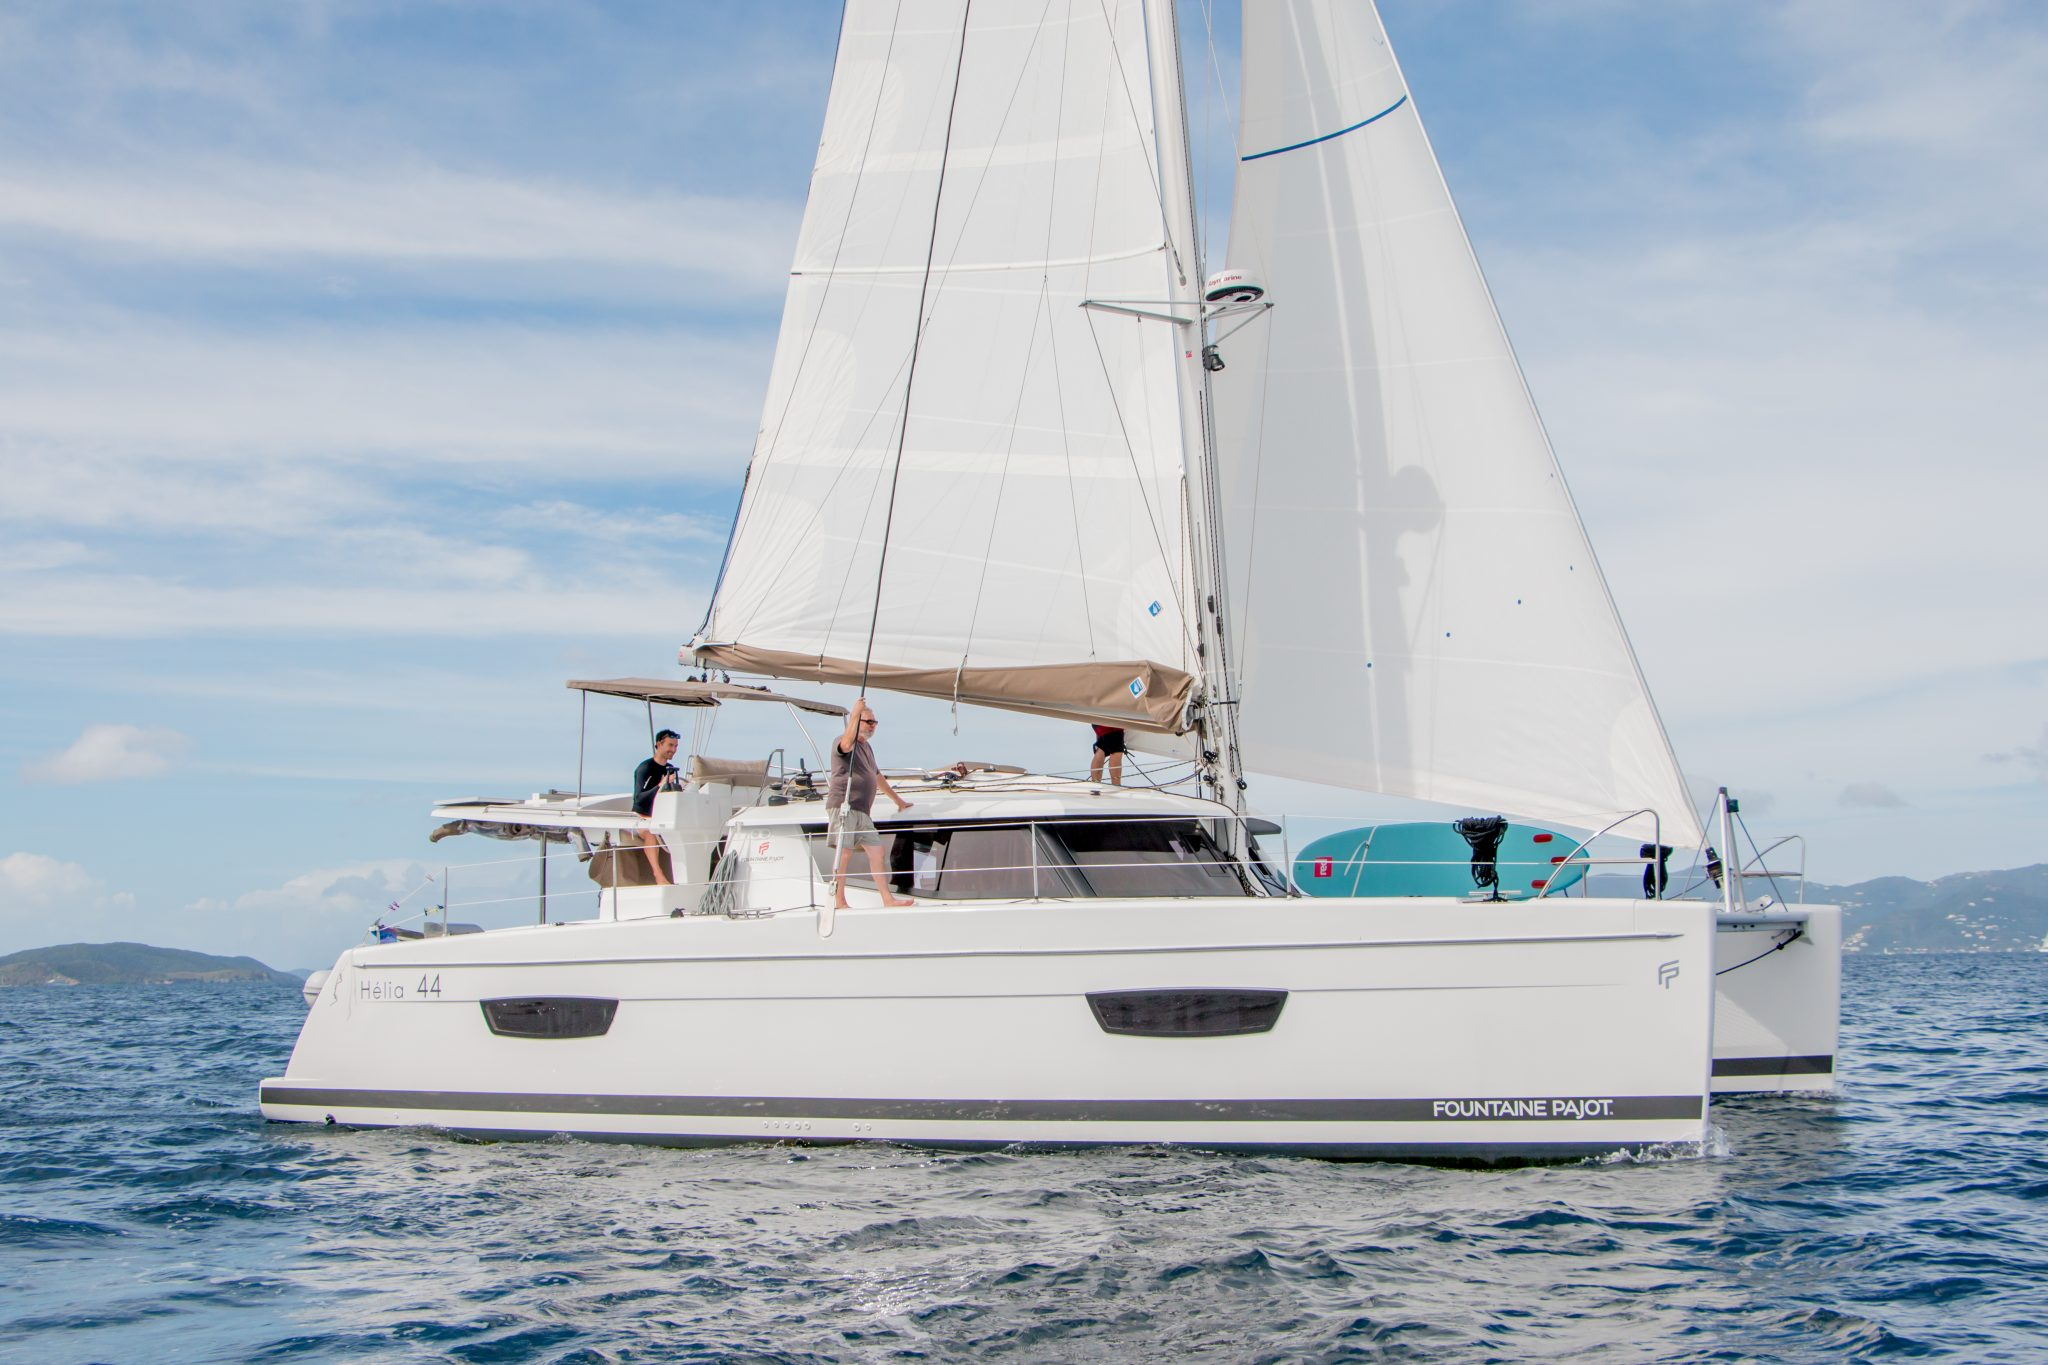 Sample Itinerary for your BVI Charter Experience